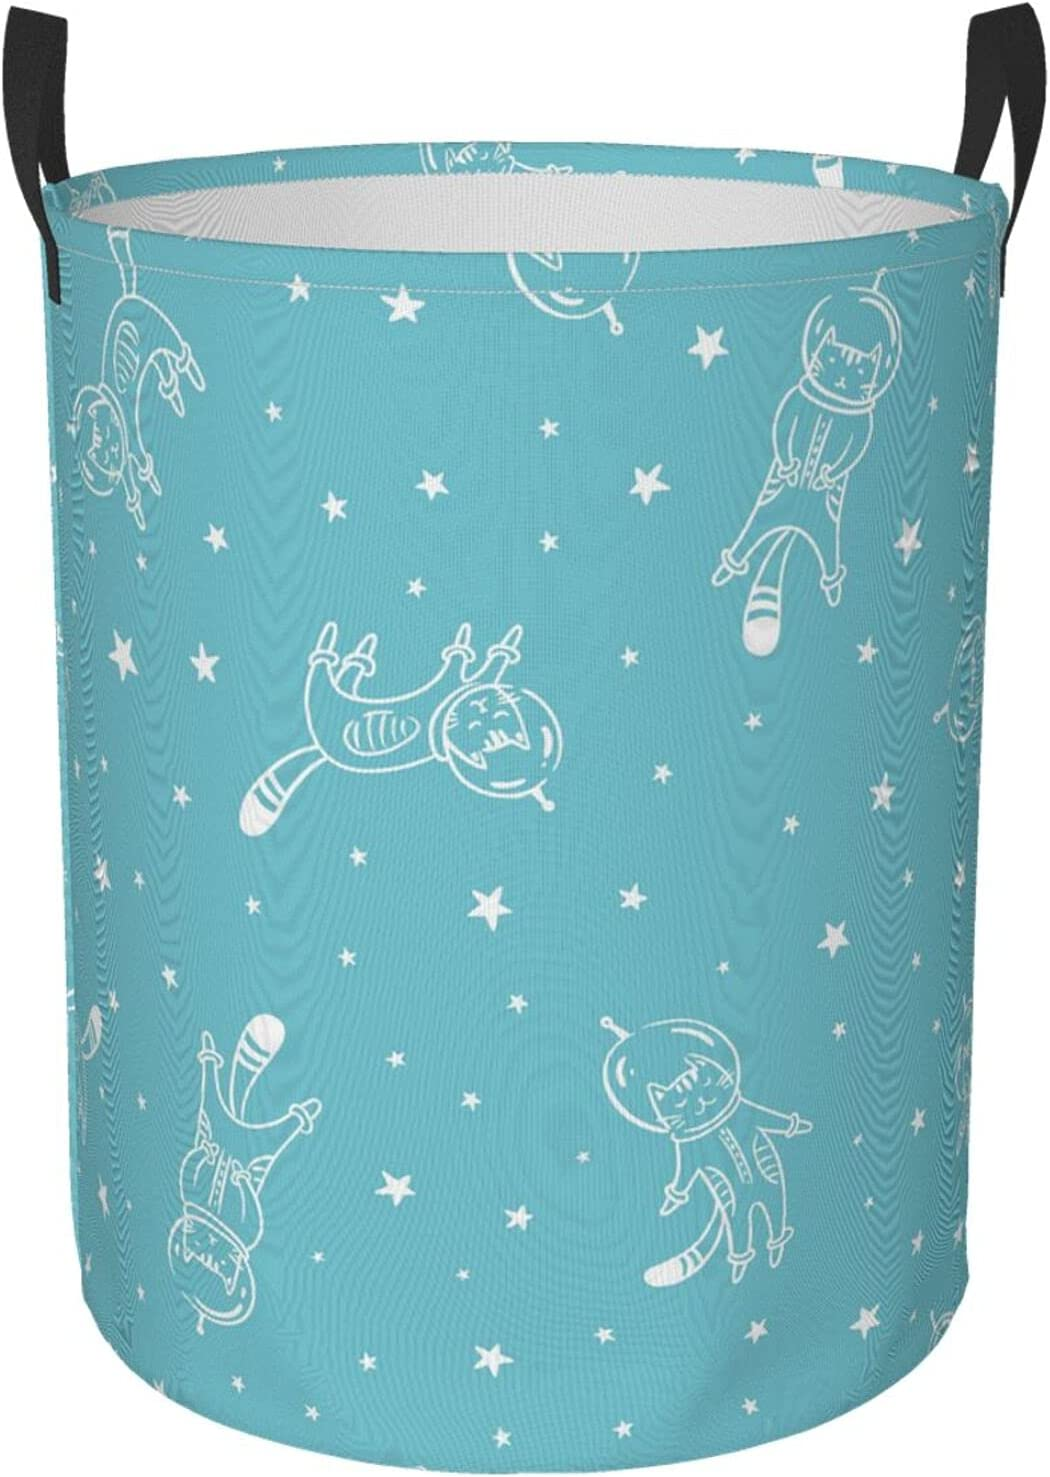 Laundry Baskets Hamper for Men Super Special SALE held Funny in trust Cat on Astronaut Space